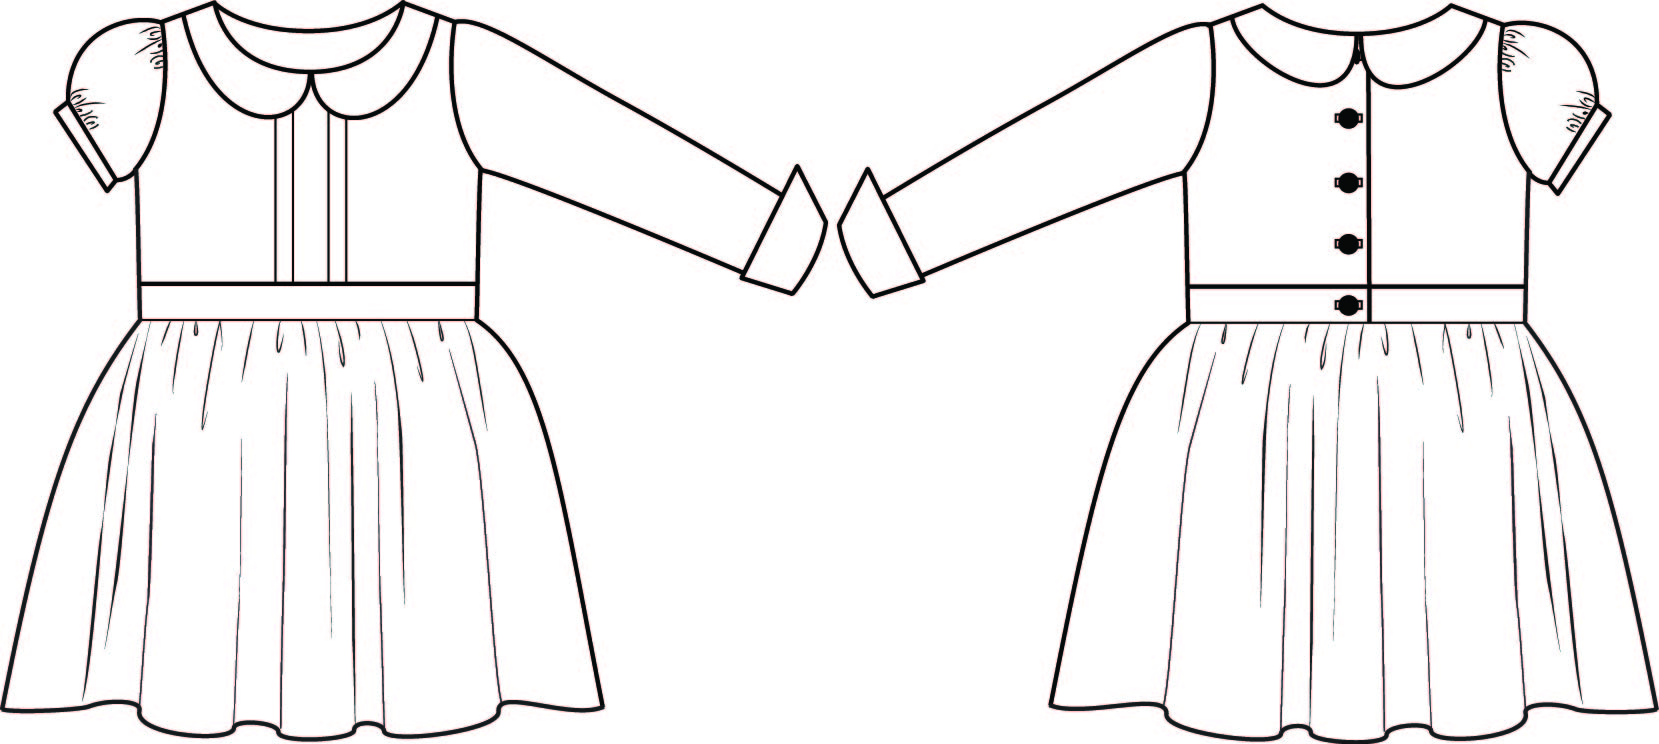 Line Drawing Violet : Violet dress pdf pattern